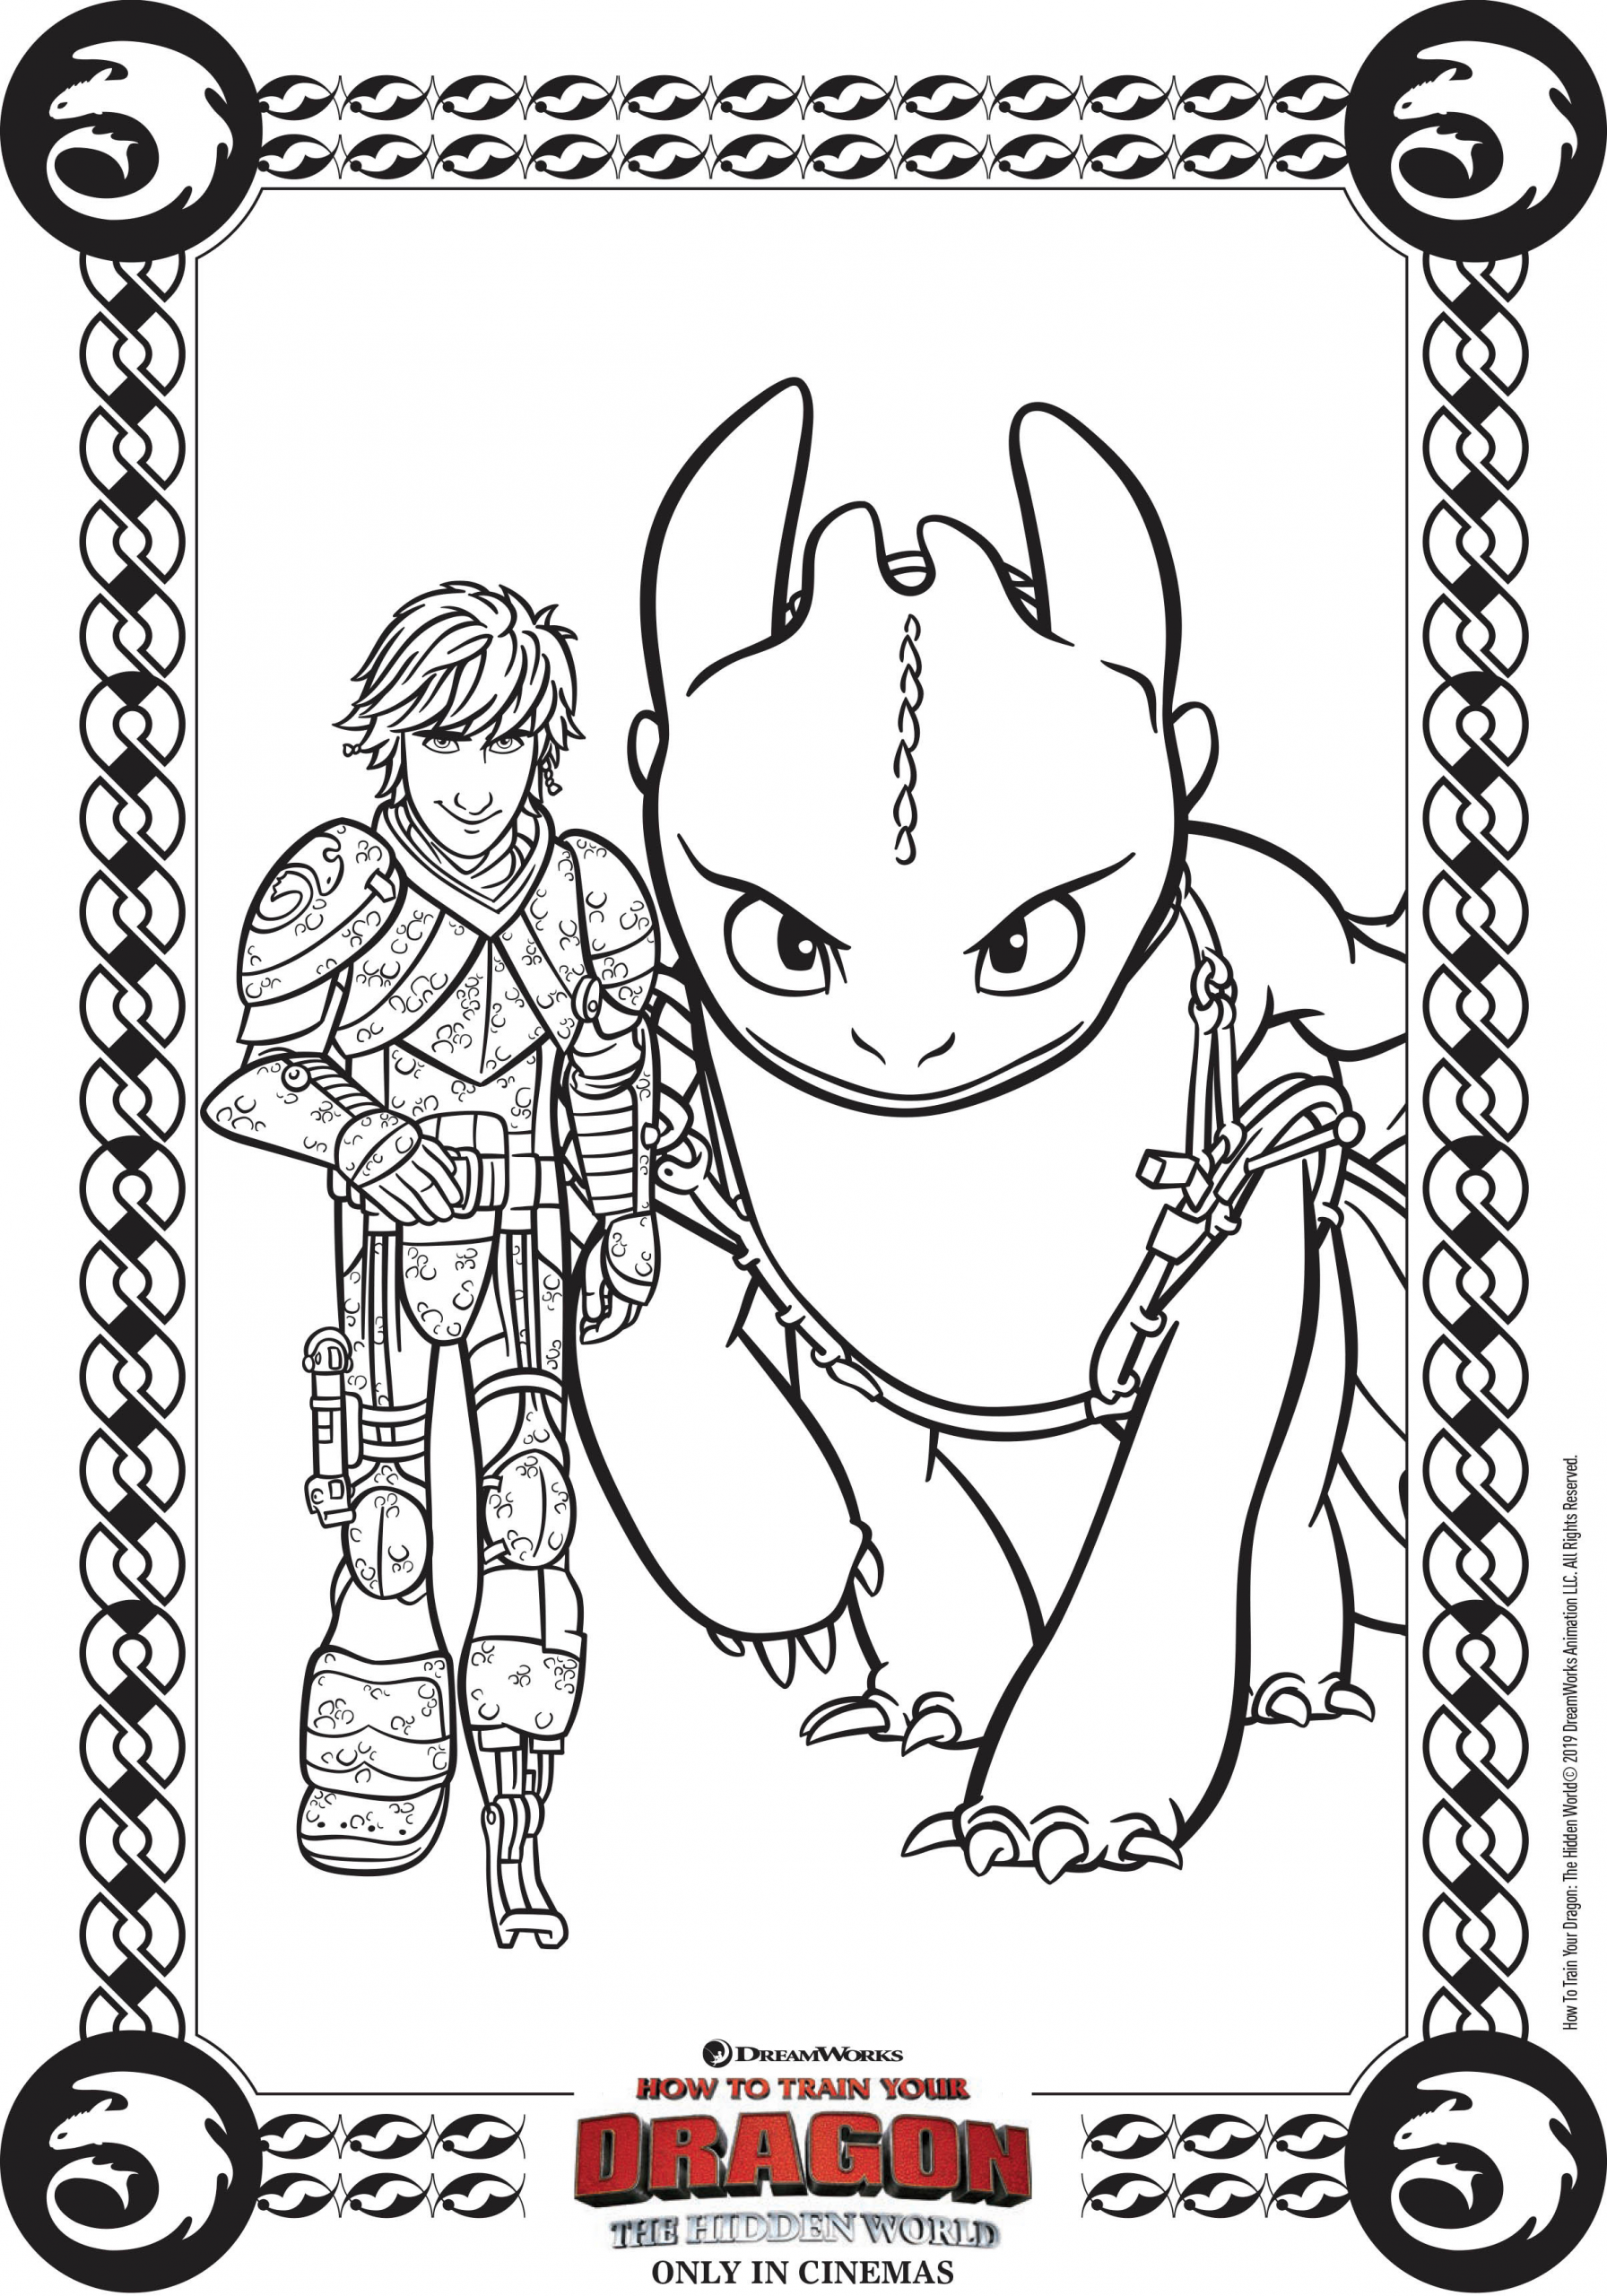 How To Train Your Dragon 3 Coloring Page Youngandtae Com In 2020 Dragon Coloring Page How Train Your Dragon Cute Toothless